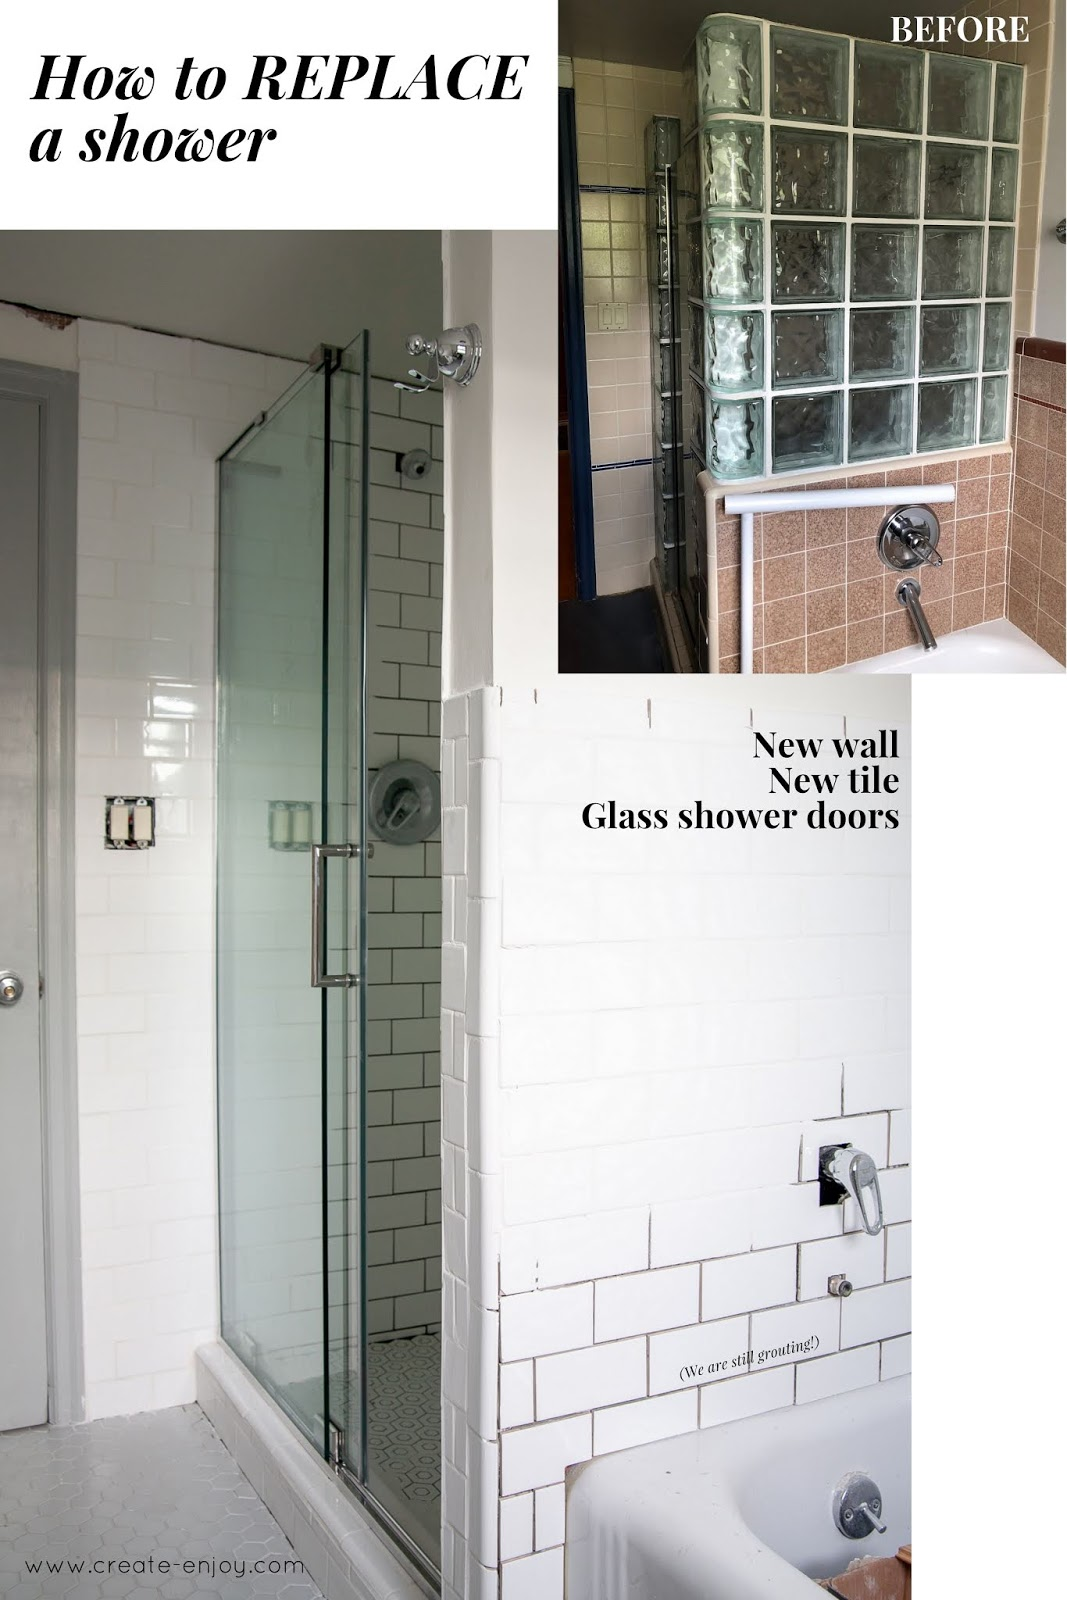 replace a shower tile and shower door